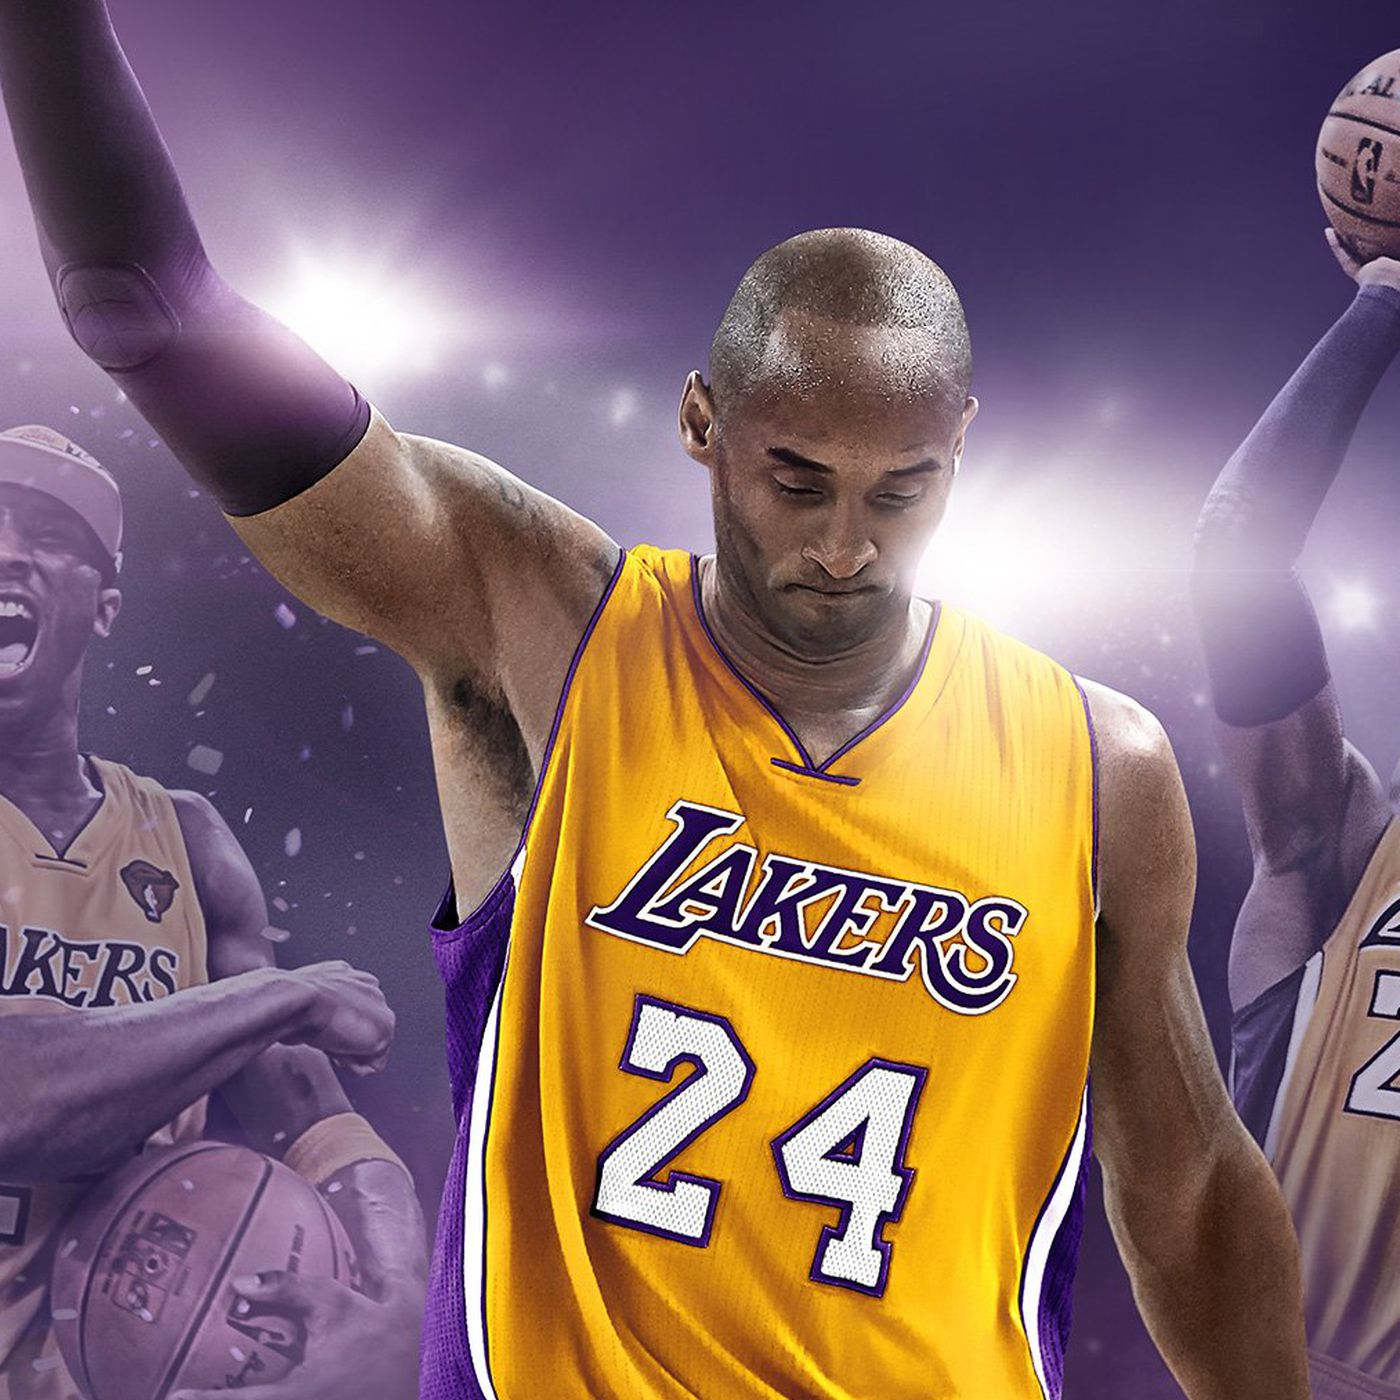 Nba 2k17 Honors Kobe Bryant With Legend Edition This Fall